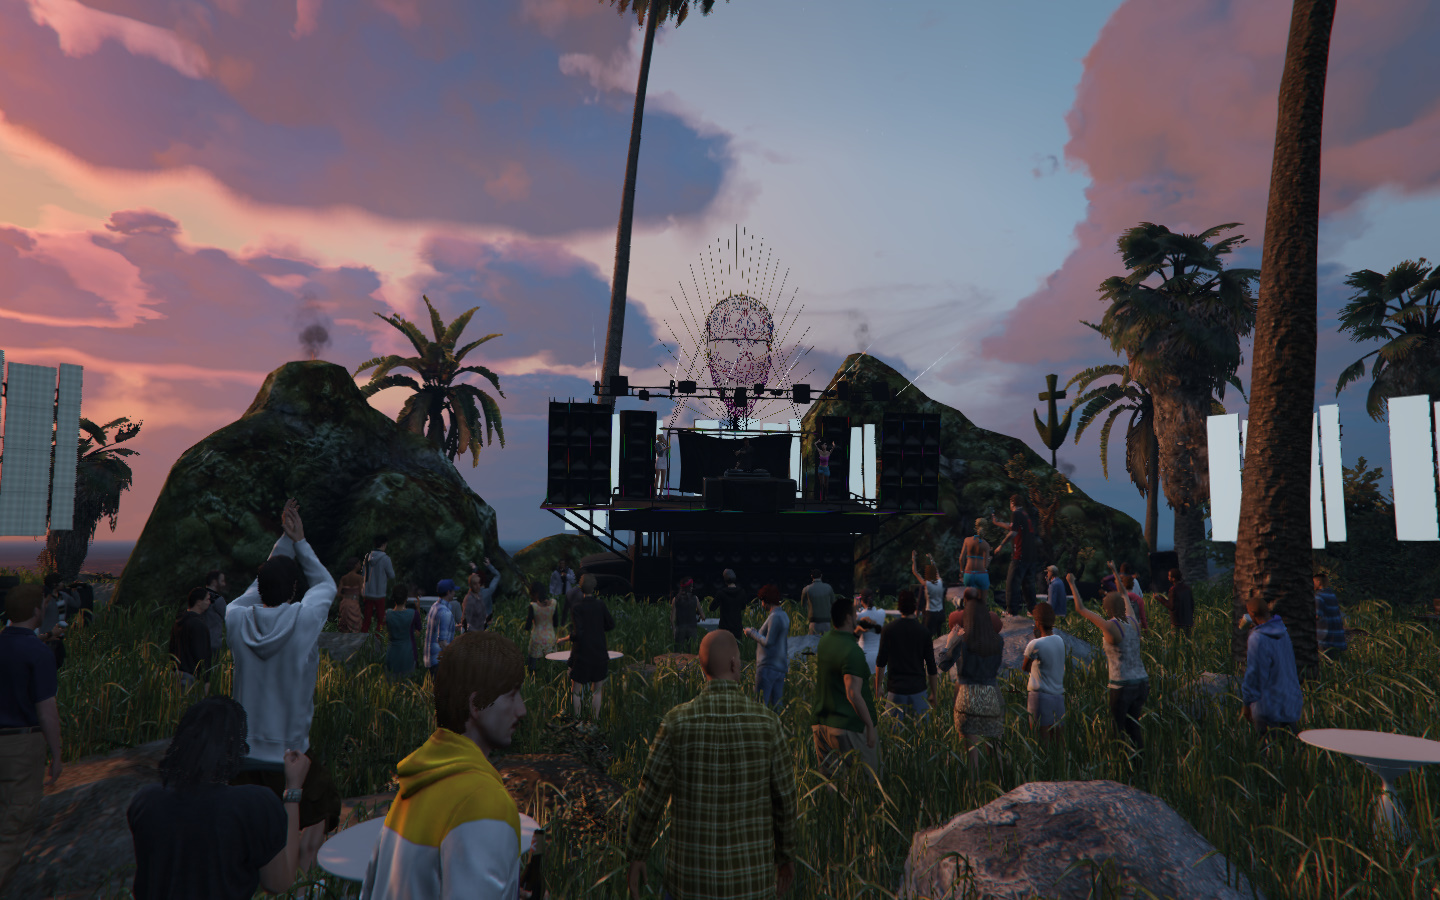 DJ Concert on Island [MapEditor] 1.0